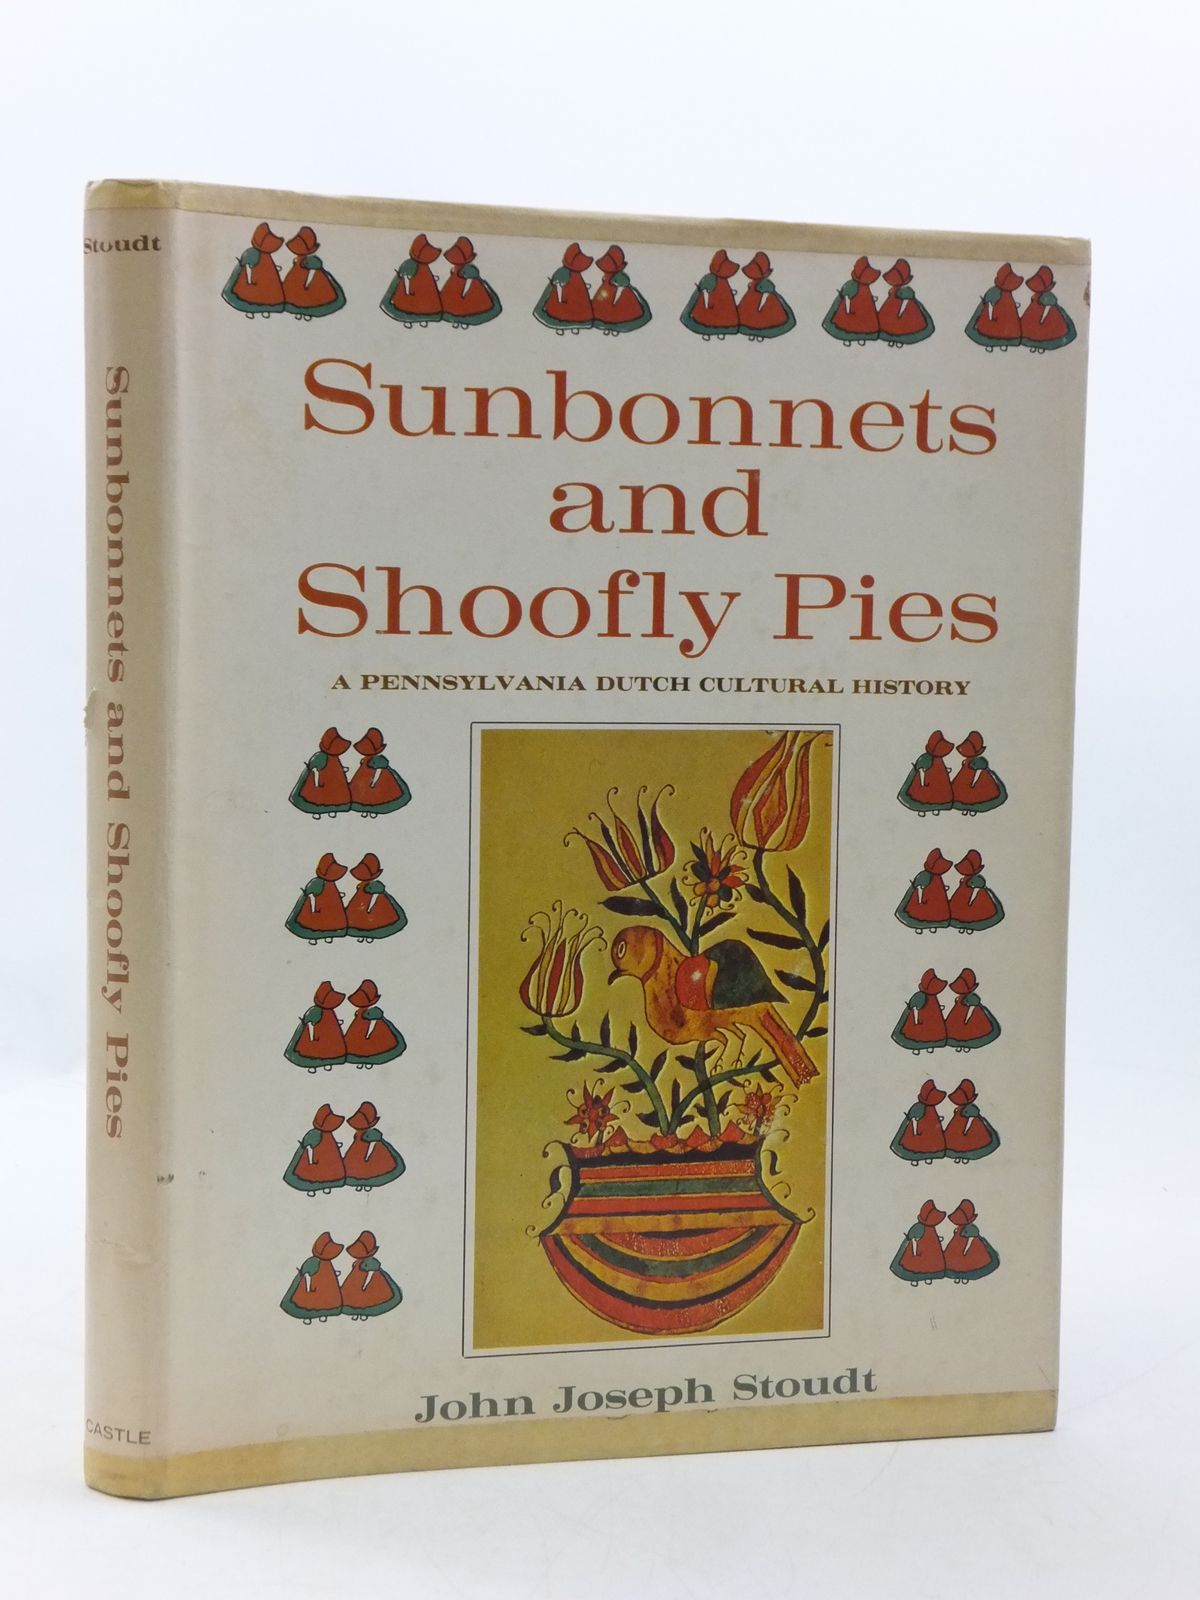 Photo of SUNBONNETS AND SHOOFLY PIES written by Stoudt, John Joseph published by Castle Books (STOCK CODE: 1605065)  for sale by Stella & Rose's Books